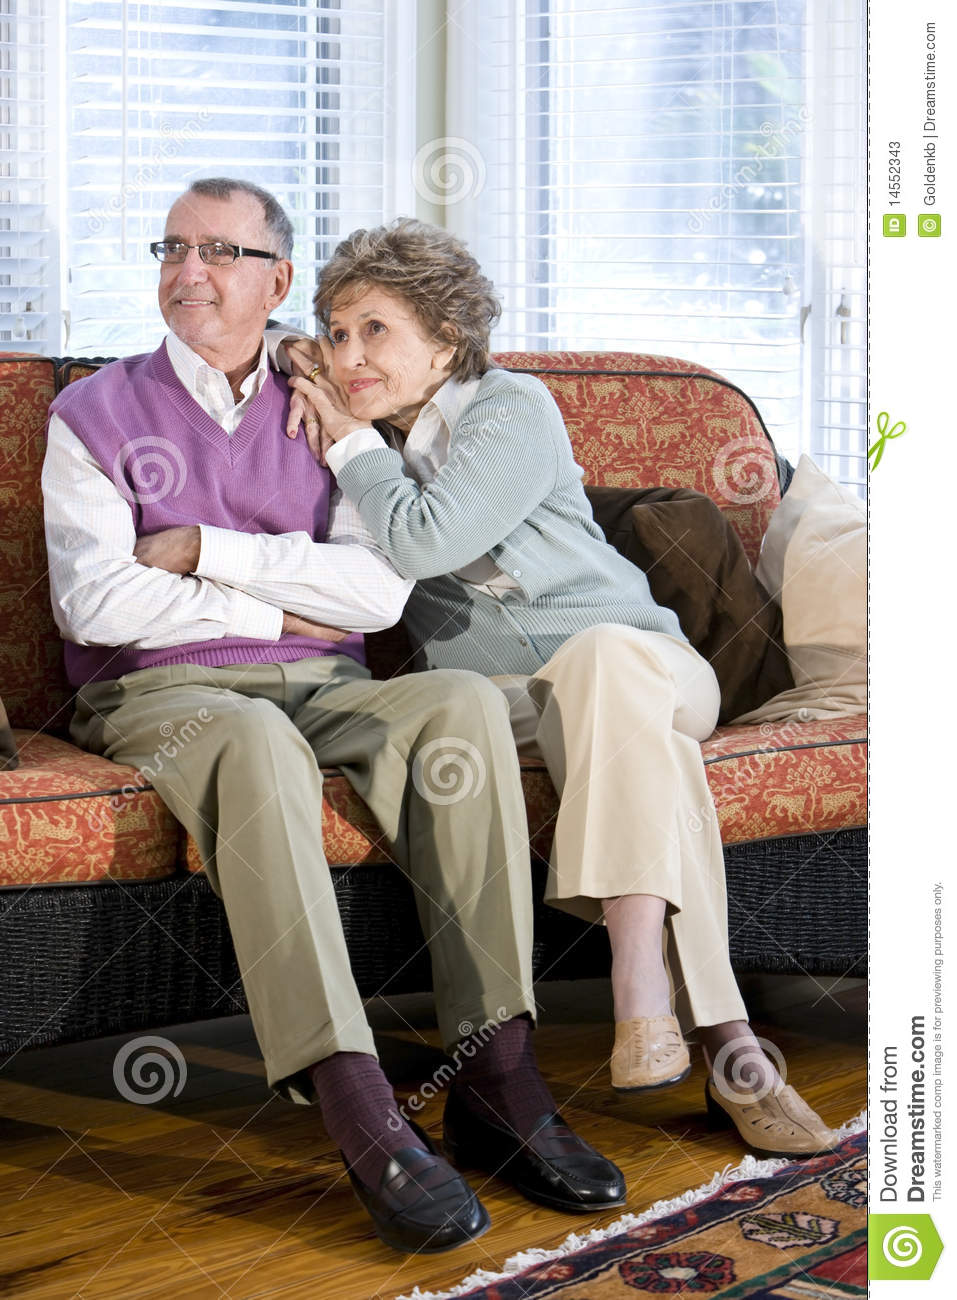 70s sofa distressed white table happy senior couple sitting together on couch stock photos ...